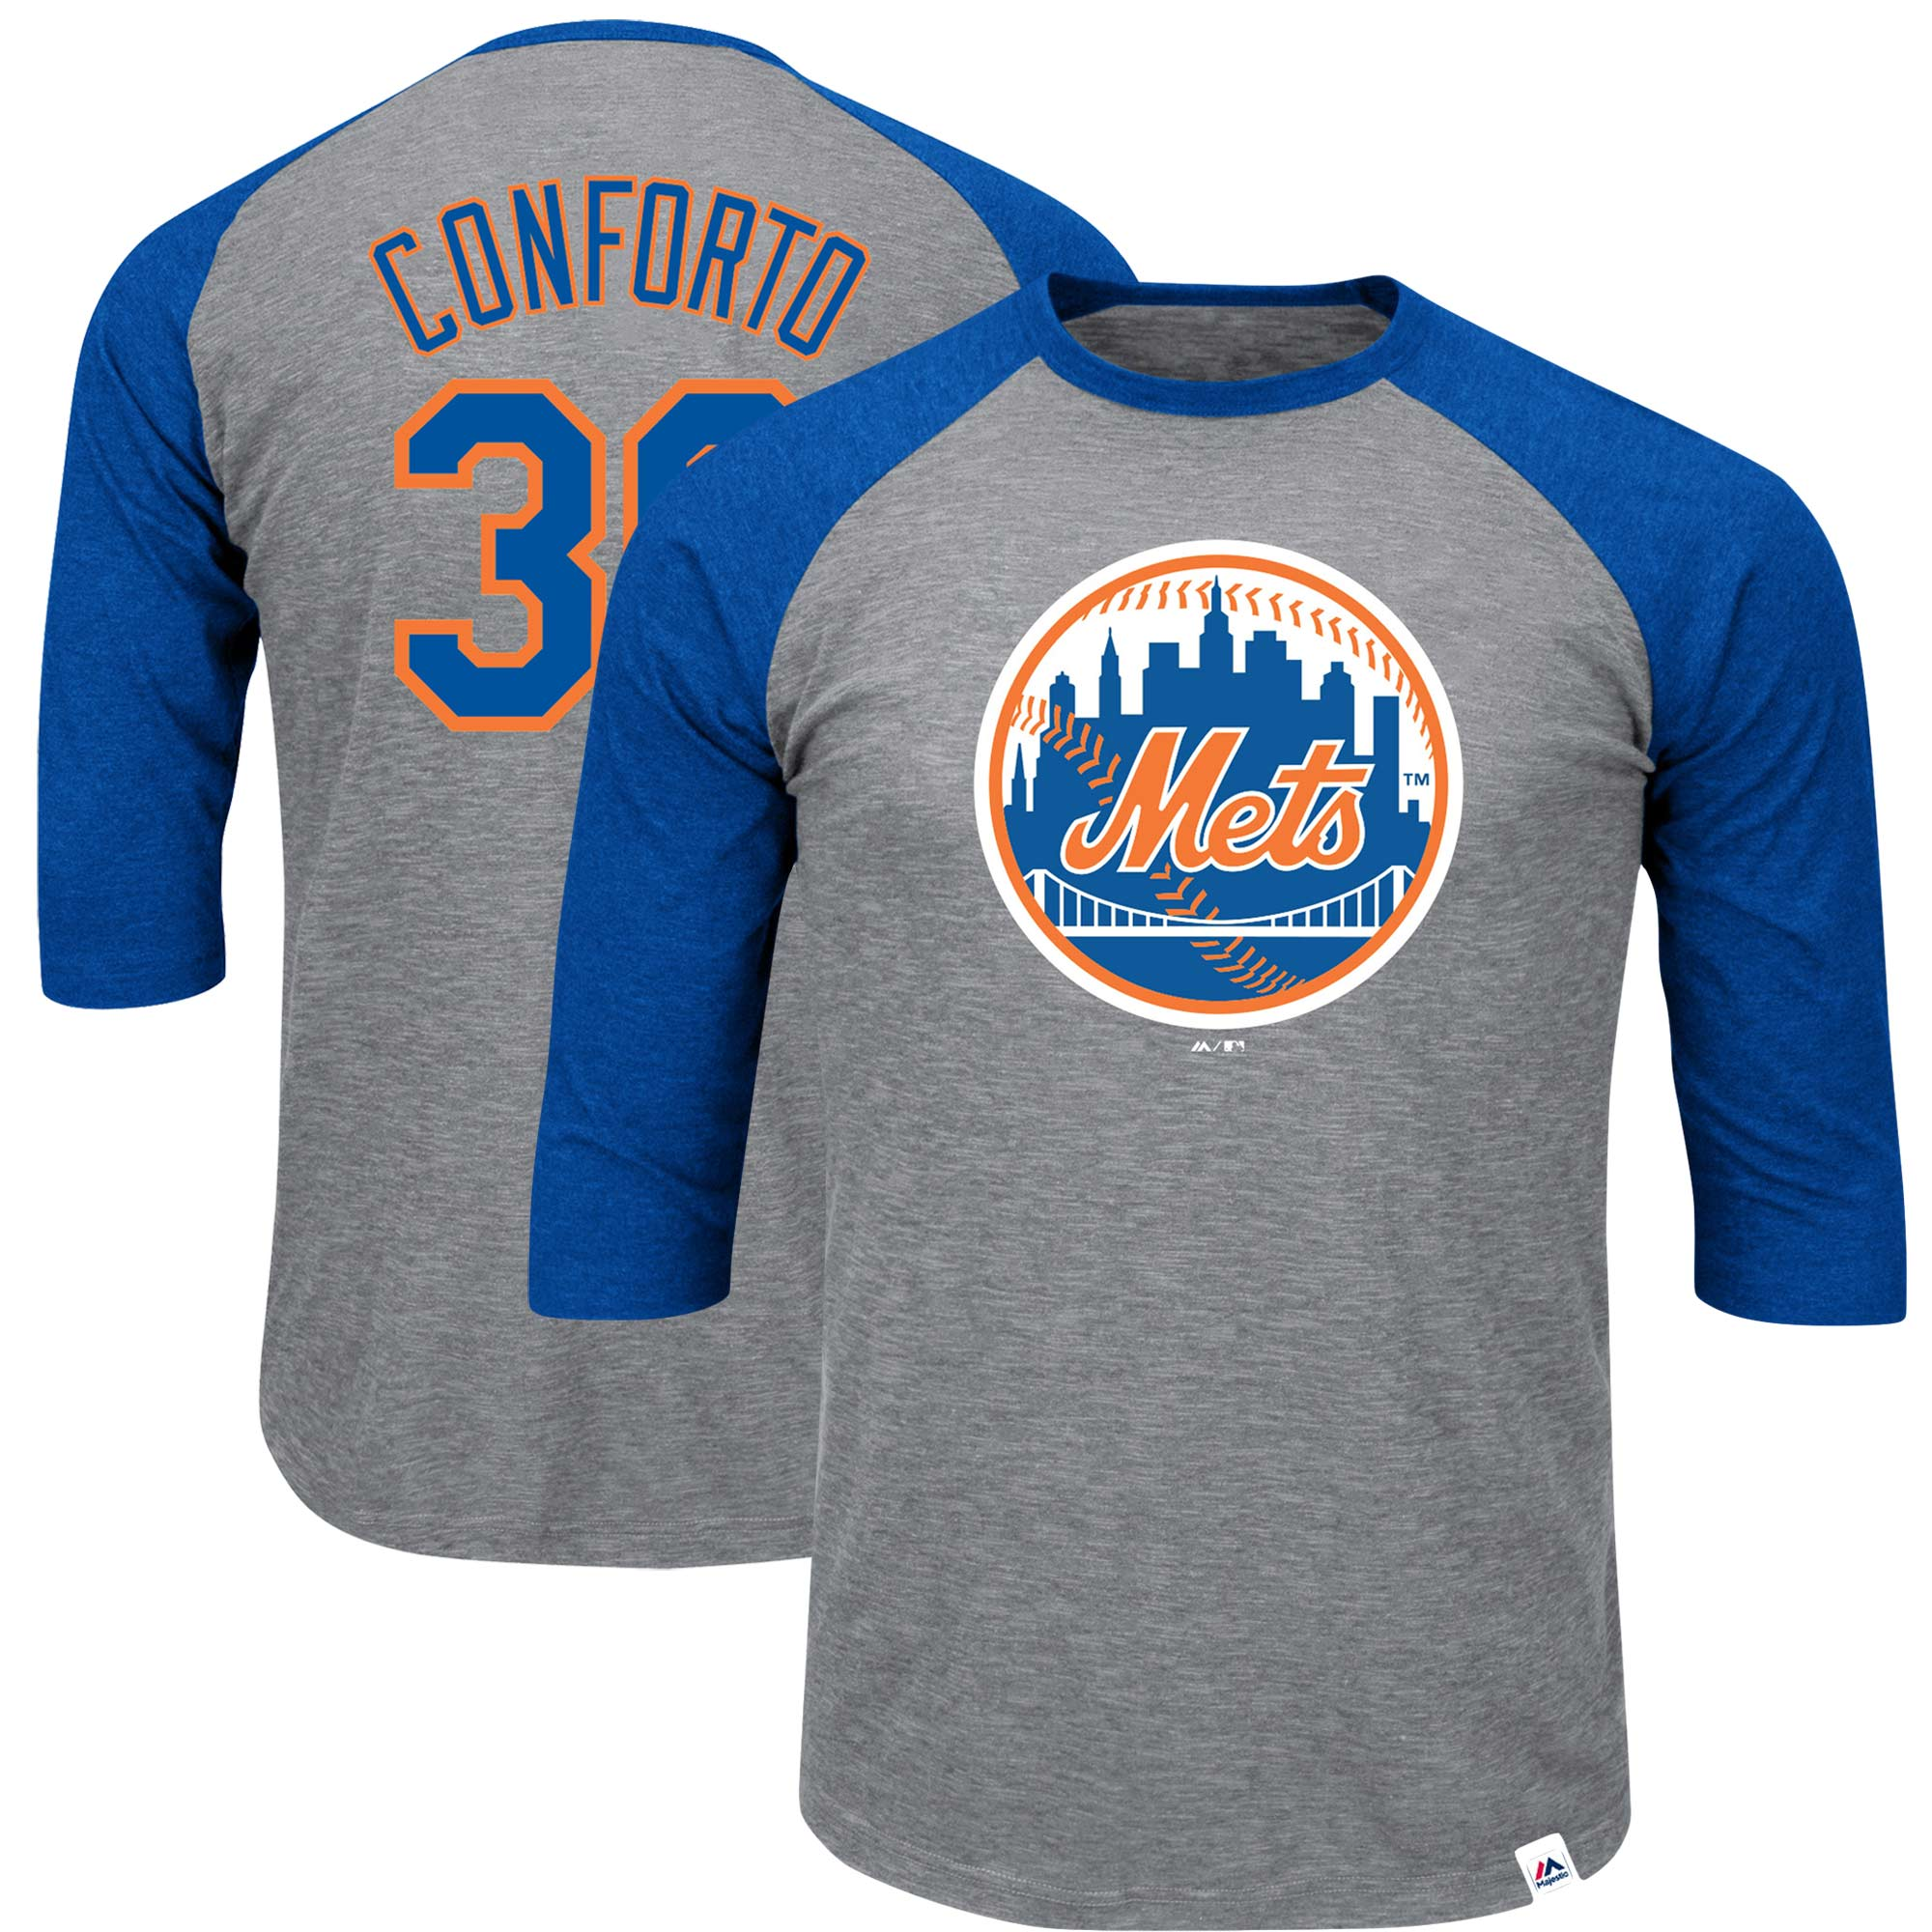 Michael Conforto New York Mets Majestic Big & Tall Player Raglan 3/4-Sleeve T-Shirt - Heathered Gray/Royal